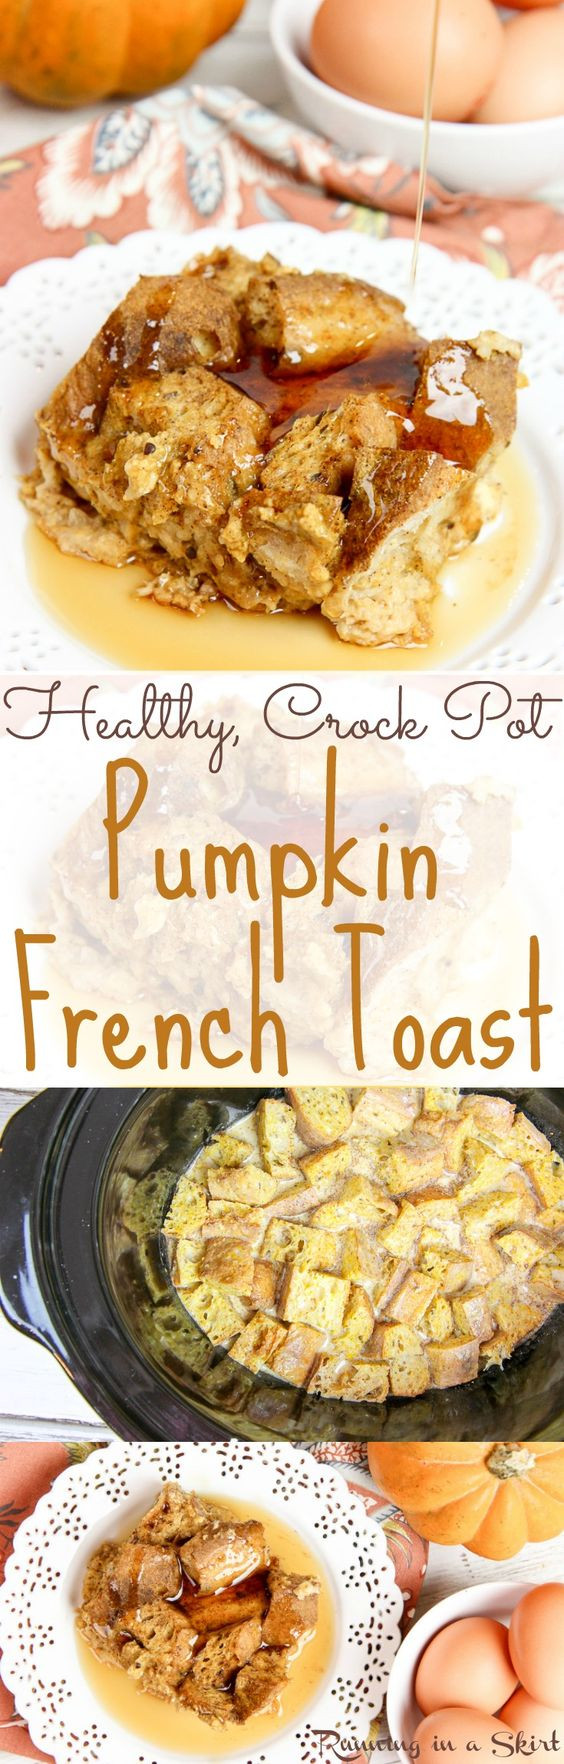 Overnight Crock Pot French Toast Great For Christmas Morning  Healthy Crock Pot Pumpkin French Toast casserole recipe